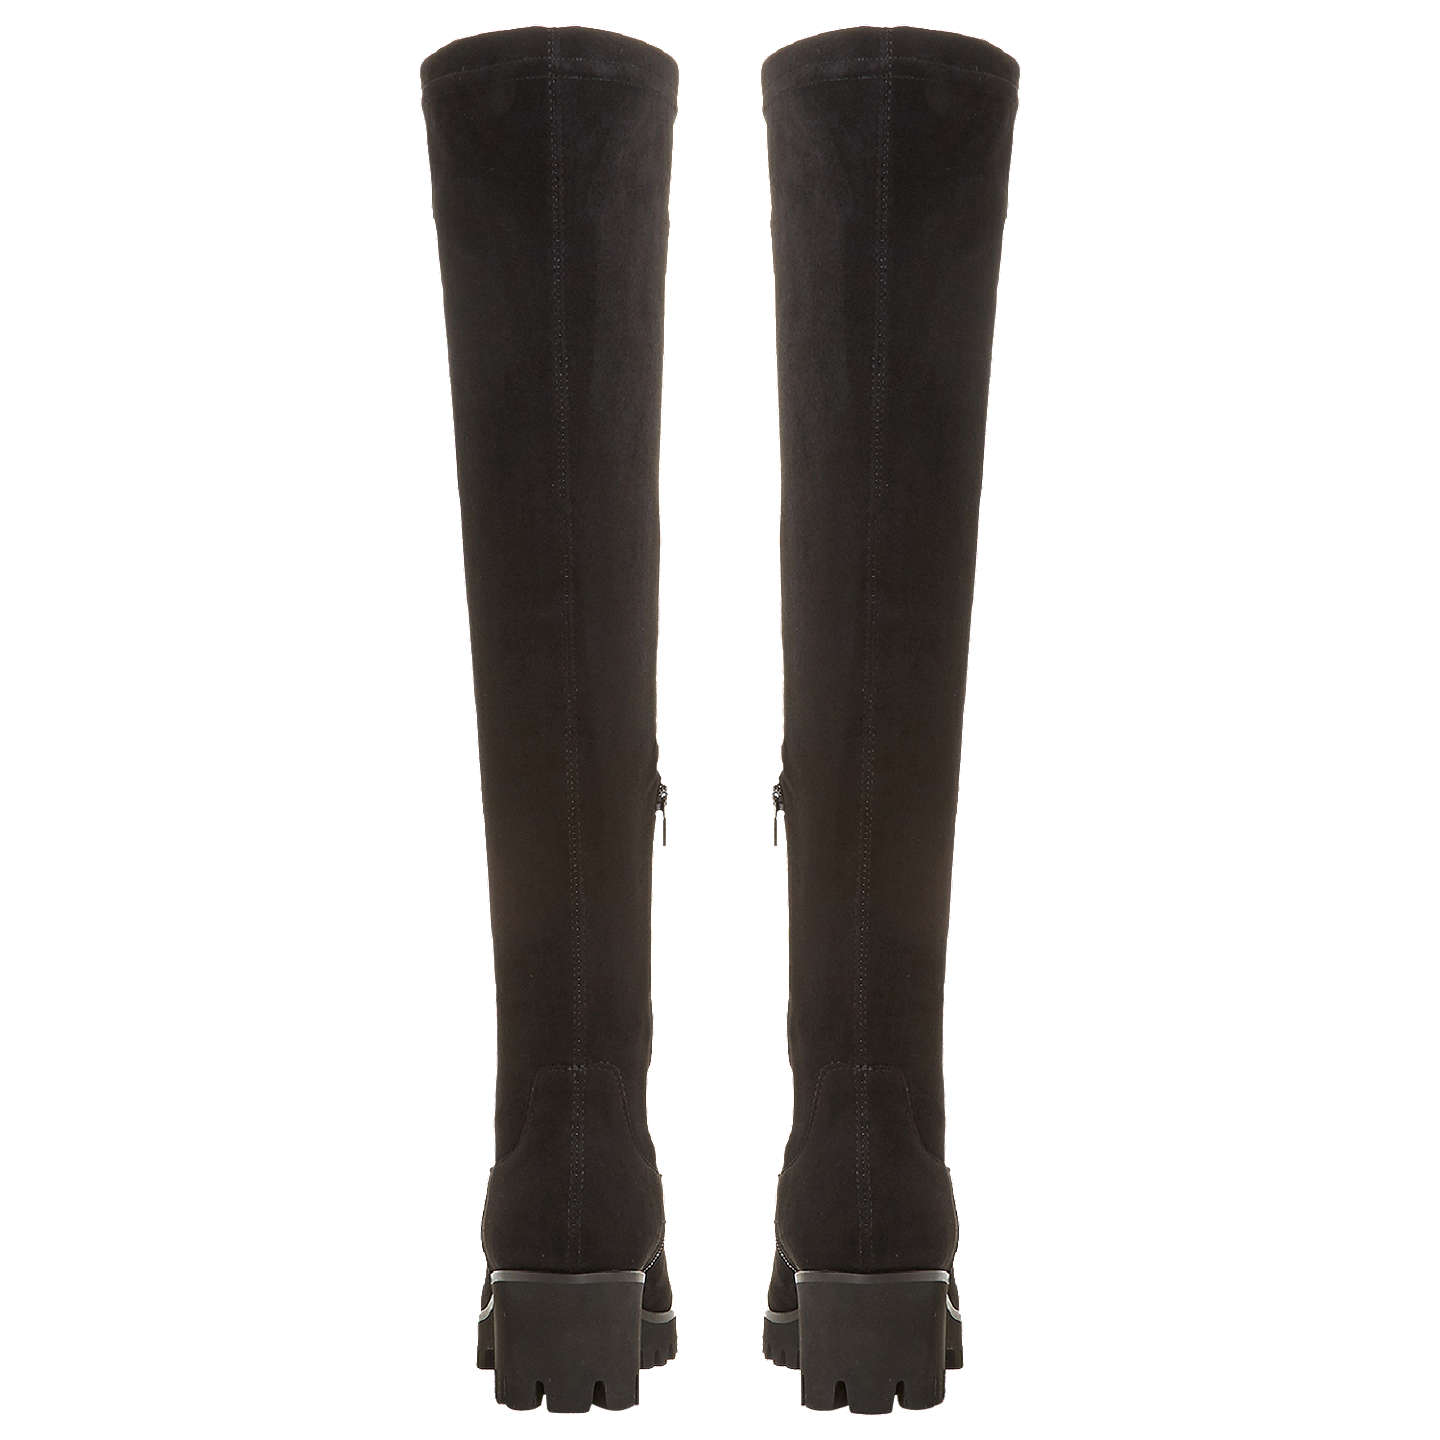 BuyDune Valero Over the Knee Boots, Black Suede, 3 Online at johnlewis.com